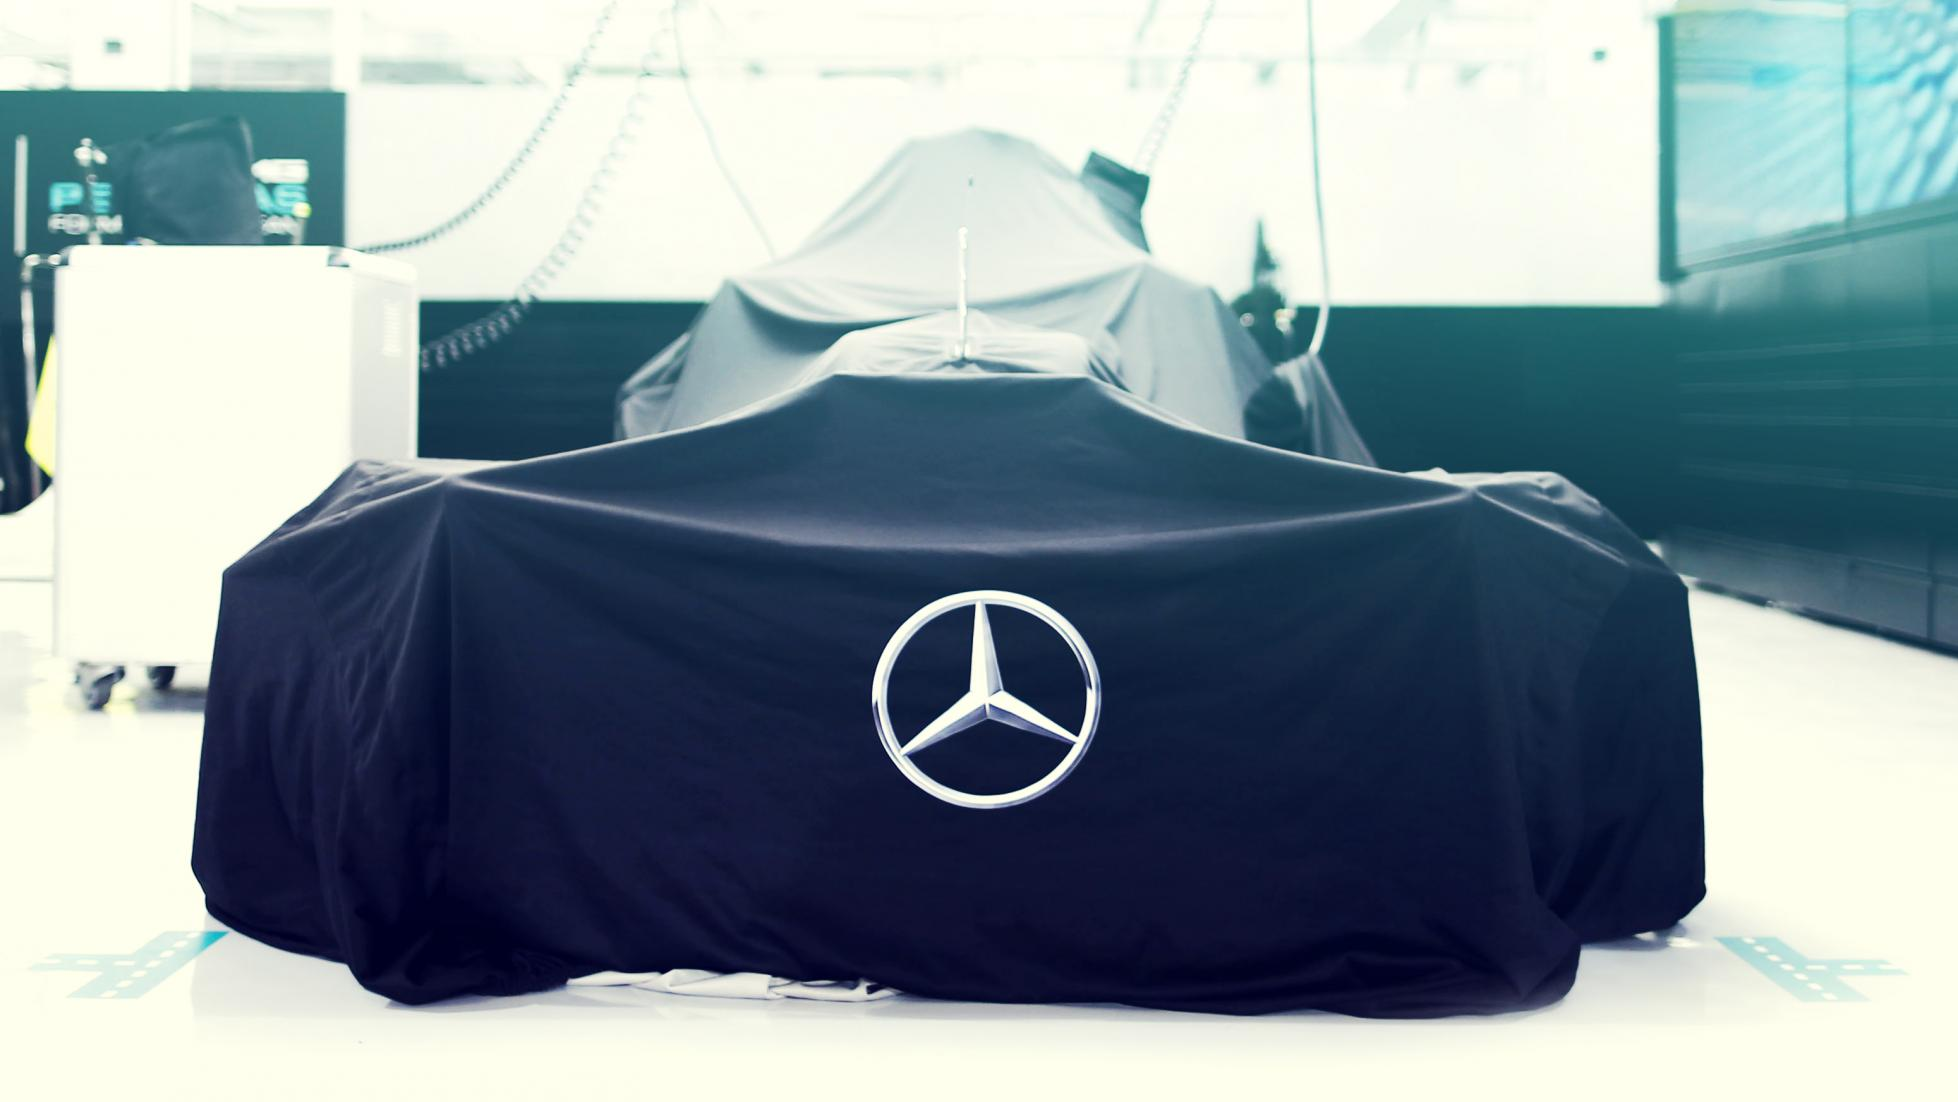 Mercedes Amg F1 Hypercar Confirmed For 2018 Oracle Finance